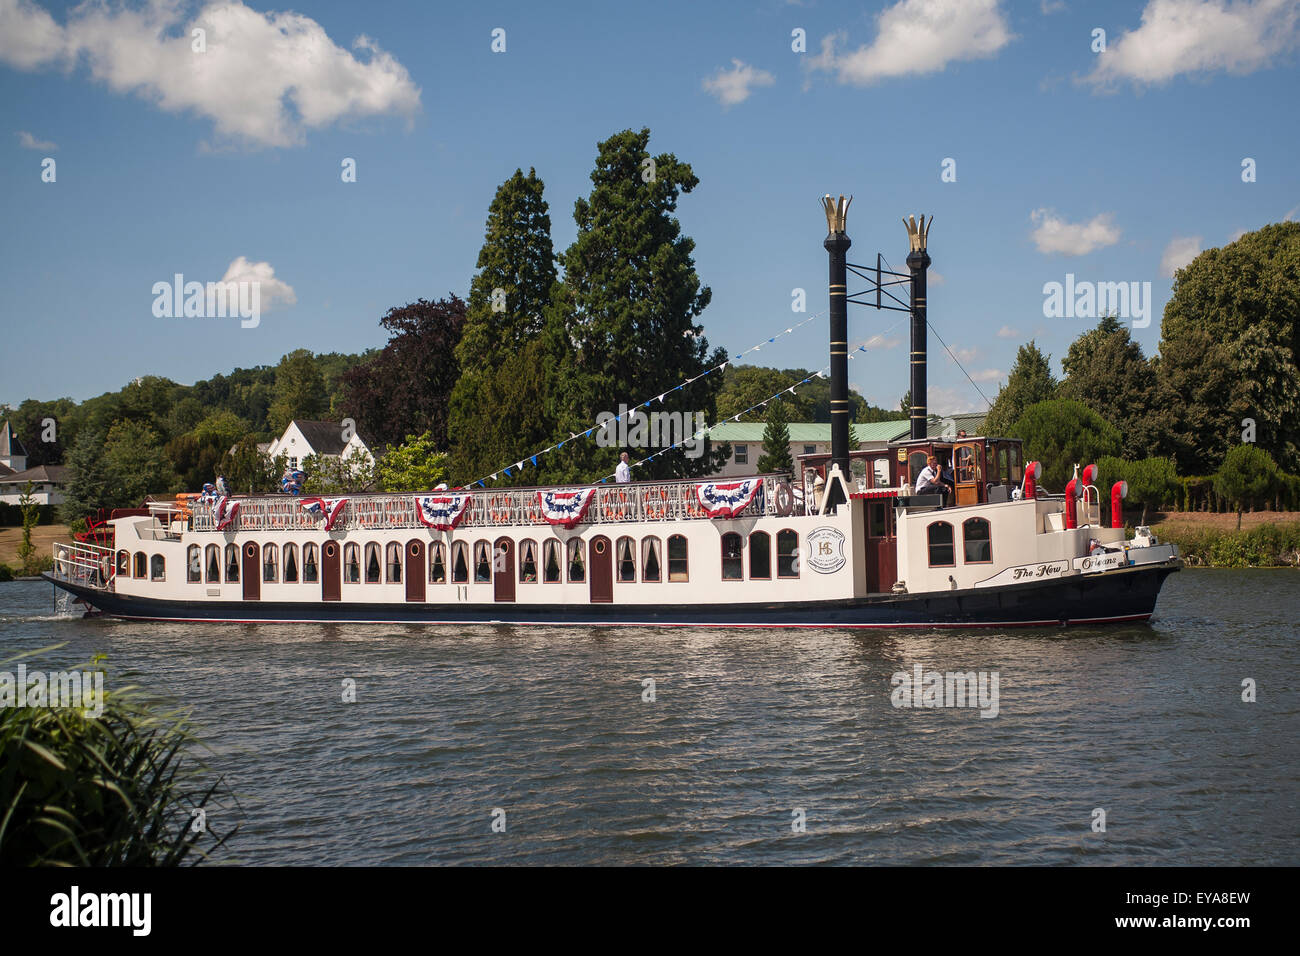 England, River Thames, New Orleans paddle steamer - Stock Image